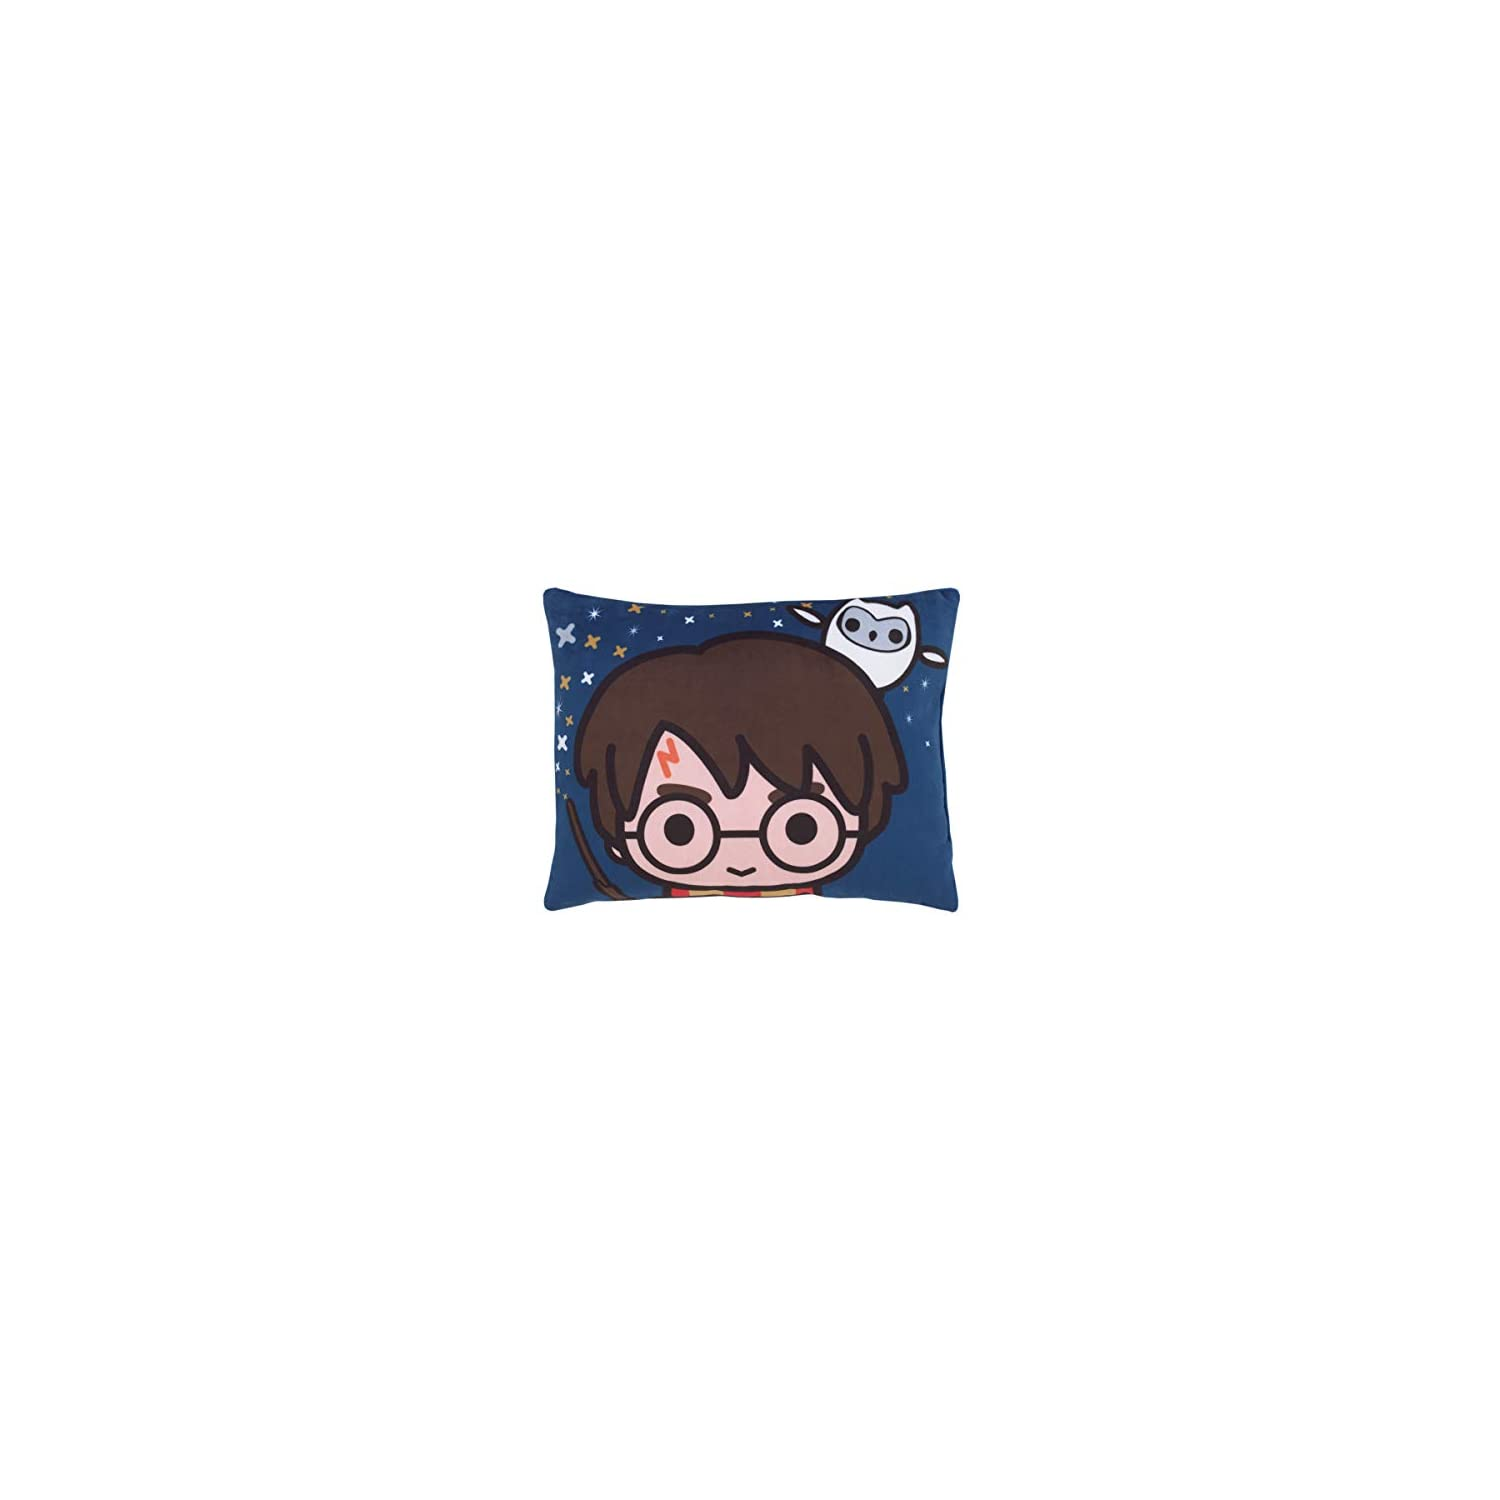 Harry Potter Wizards in Training Navy Decorative Toddler Pillow, Navy, Gold, White, Orange